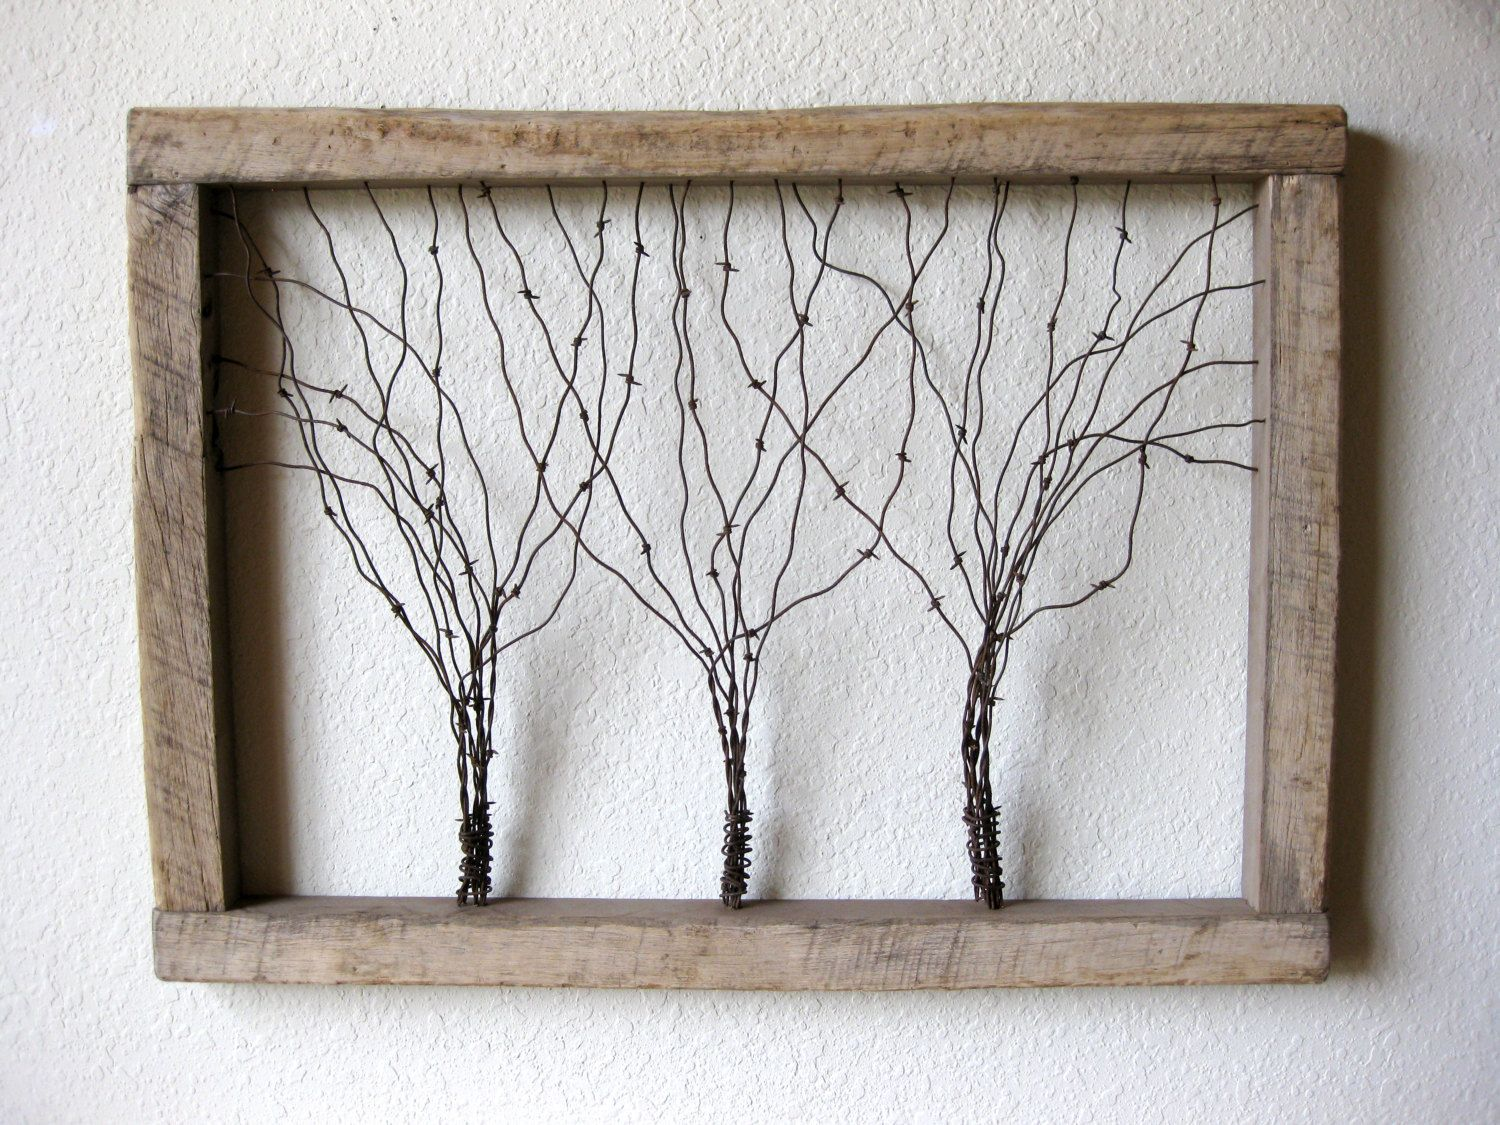 Barn Wood Art Ideas Large Reclaimed Barn Wood And Barbed Wire Tree Wall Art